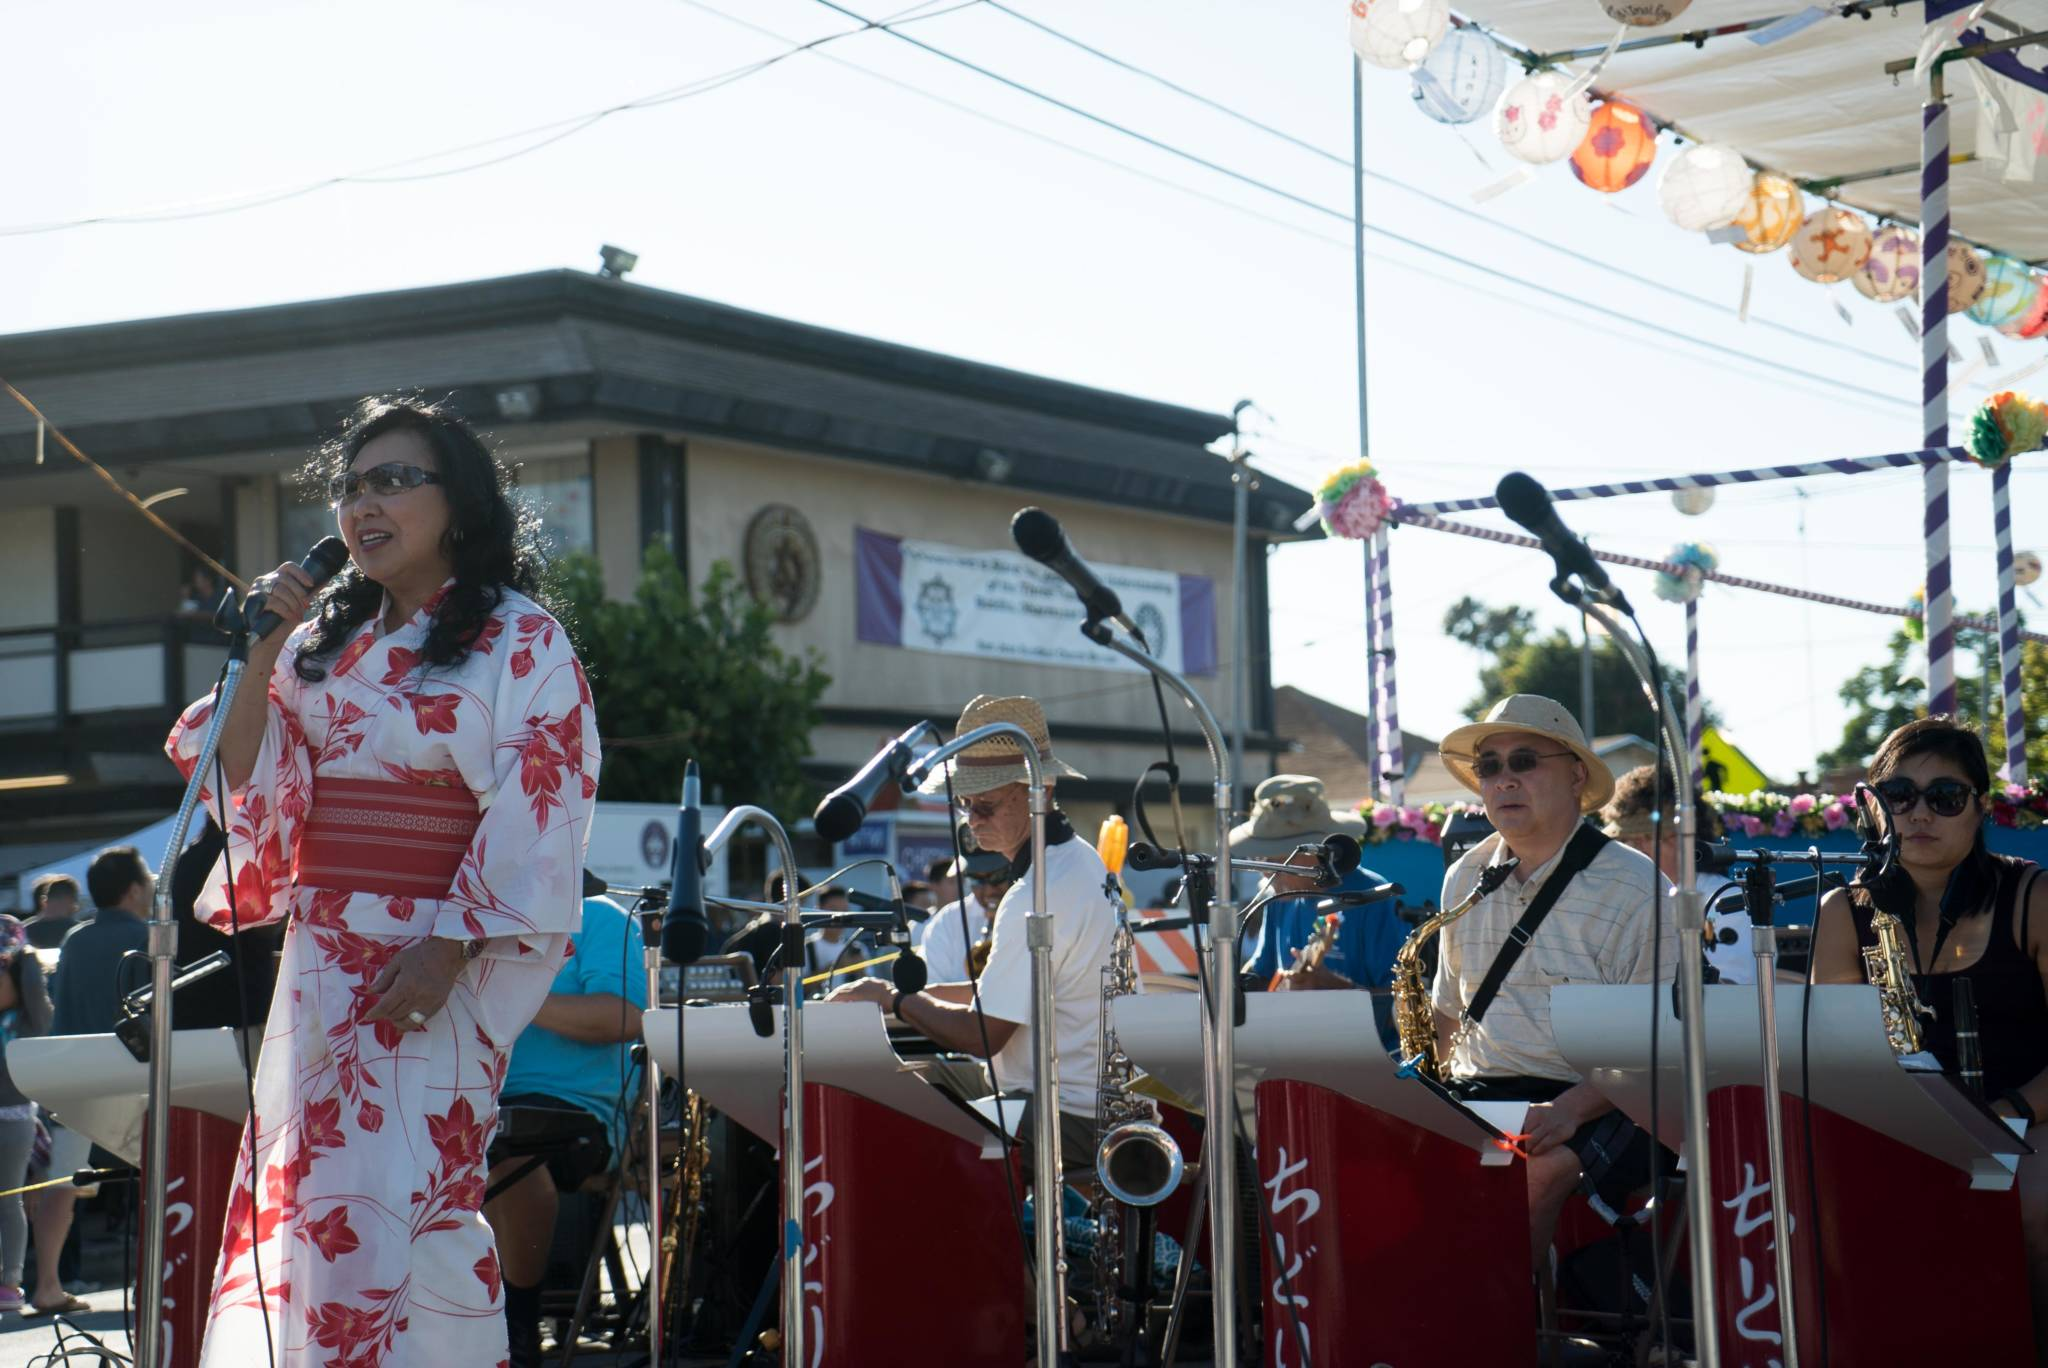 The Chidori Band performs at the Obon festival in San Jose's Japantown on July 9, 2016.